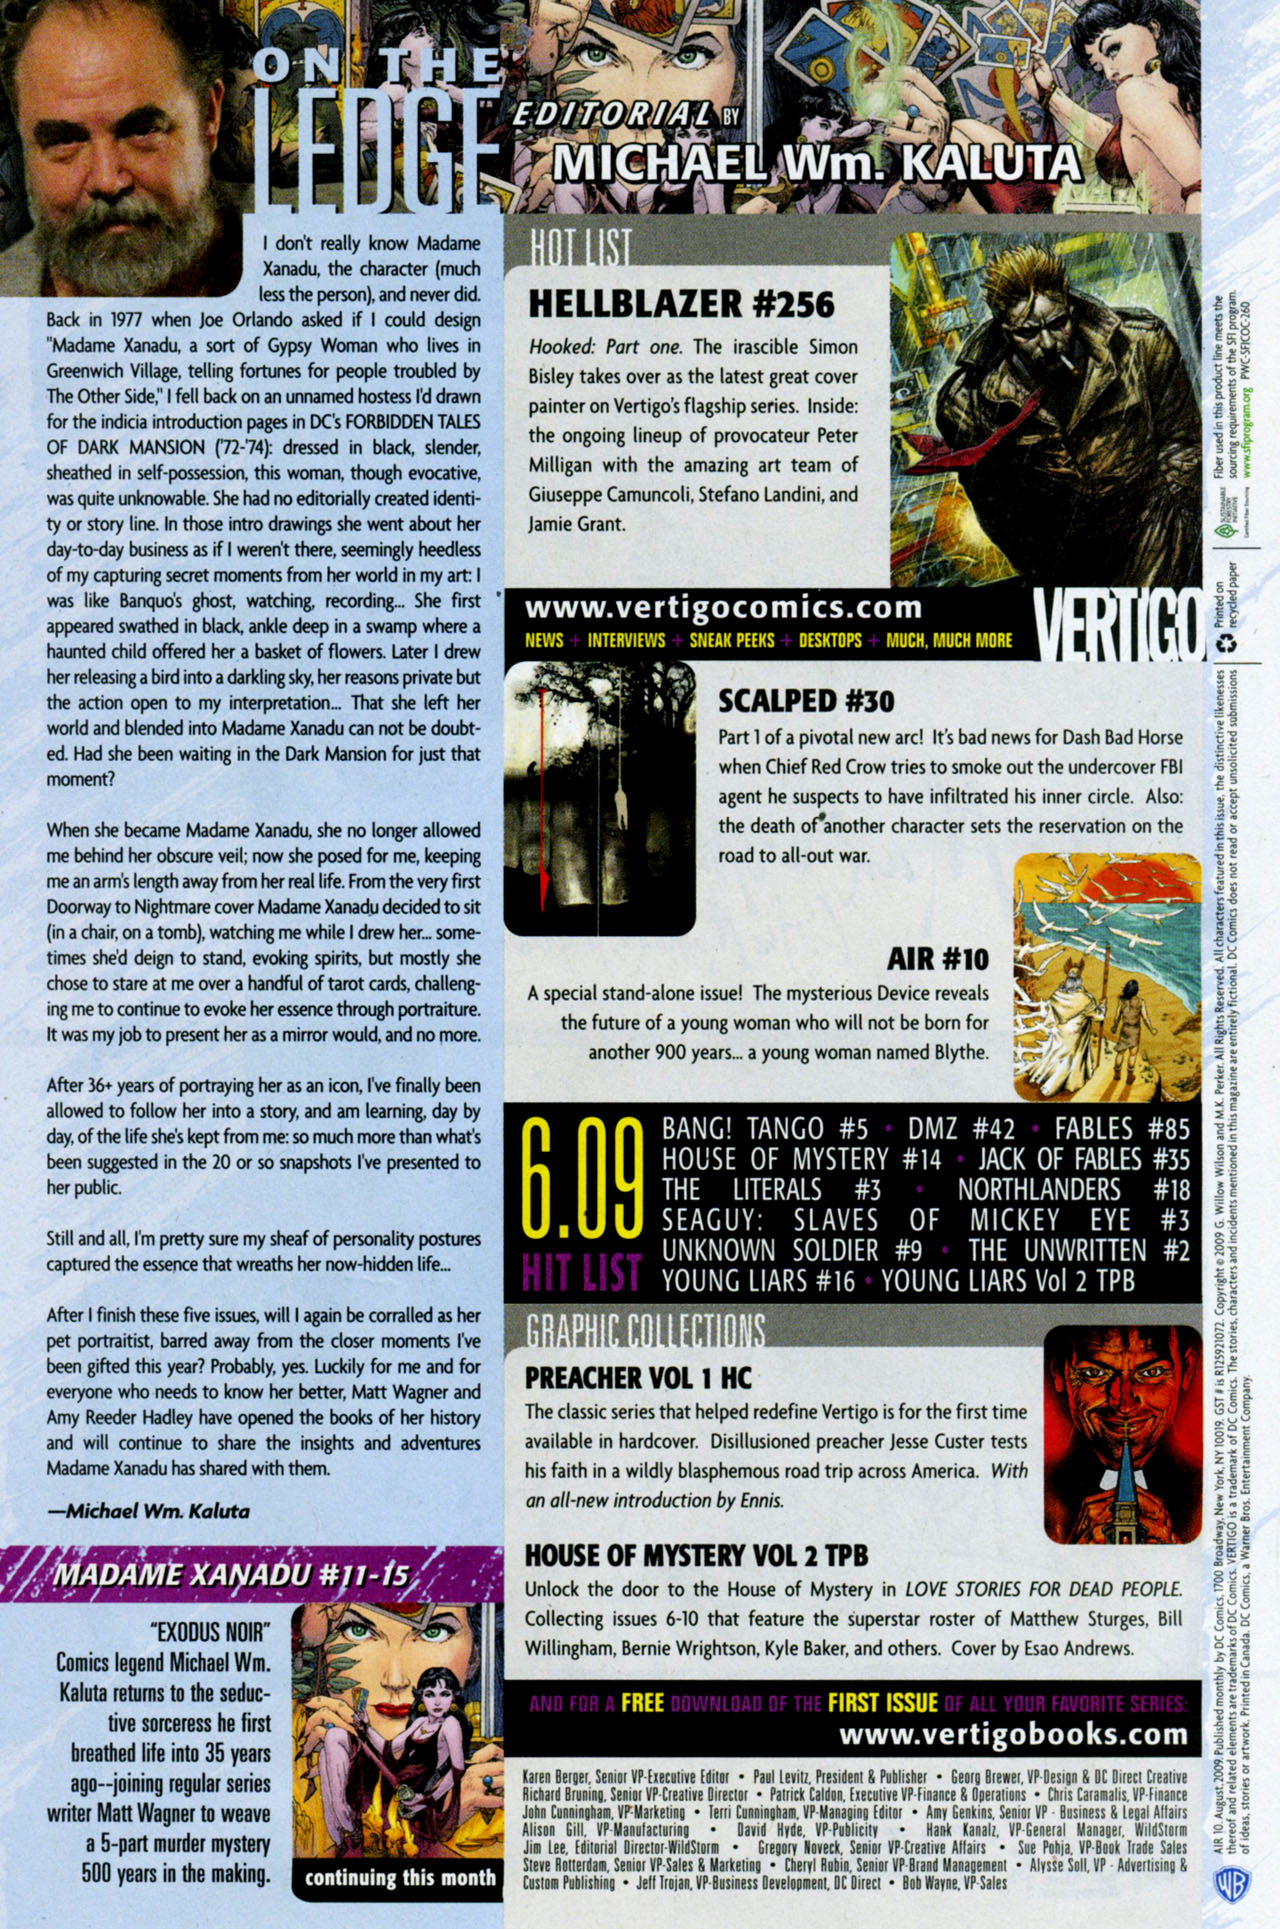 Read online Air comic -  Issue #10 - 31